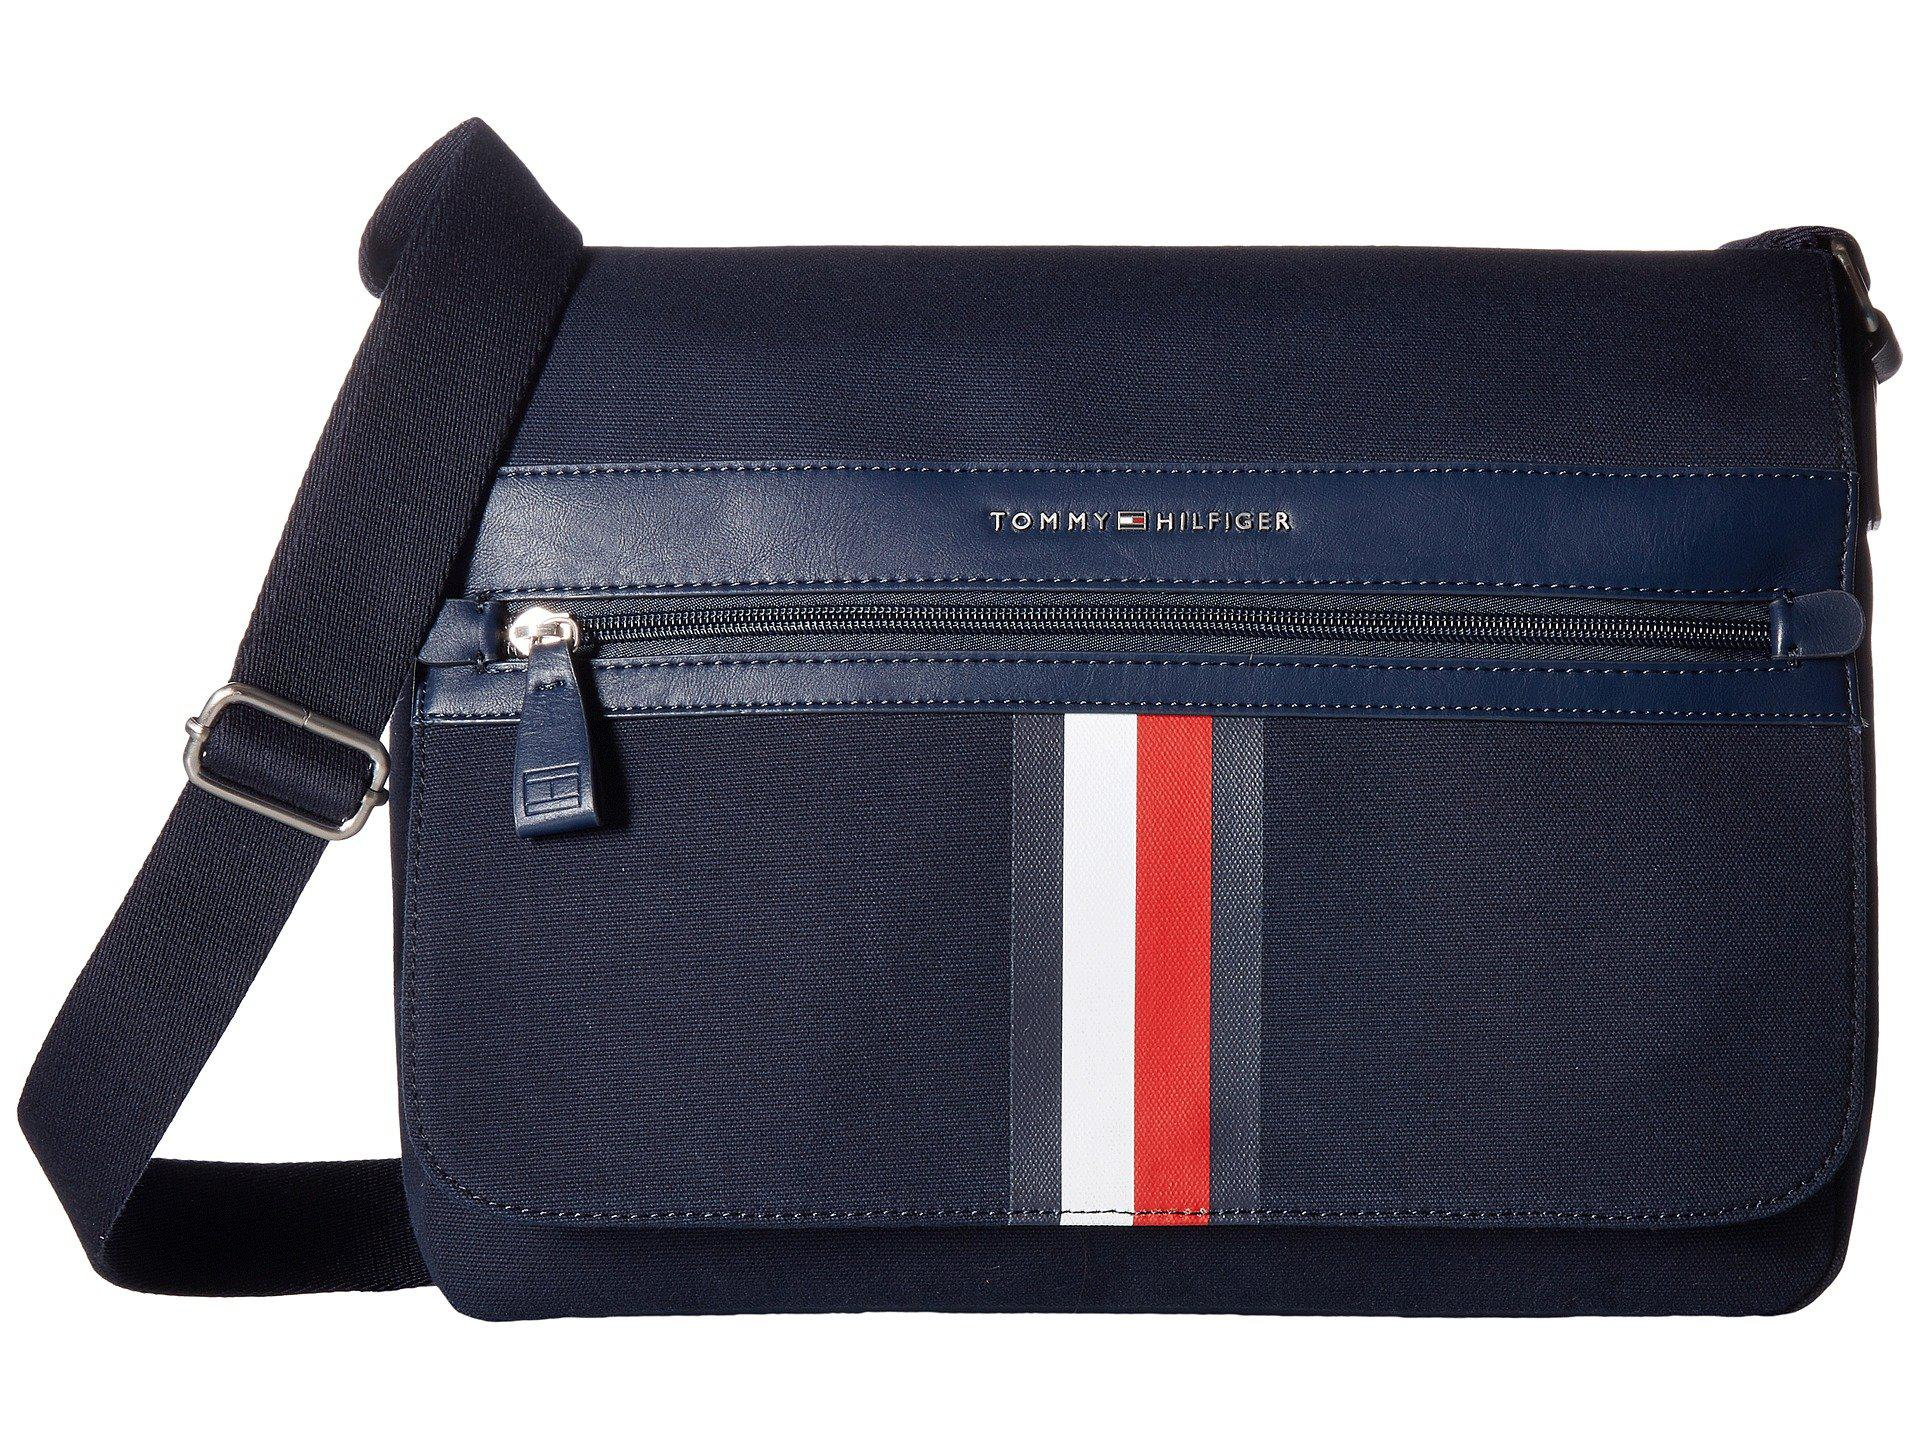 Lyst - Tommy Hilfiger Icon Messenger Canvas in Blue for Men bec946b6be